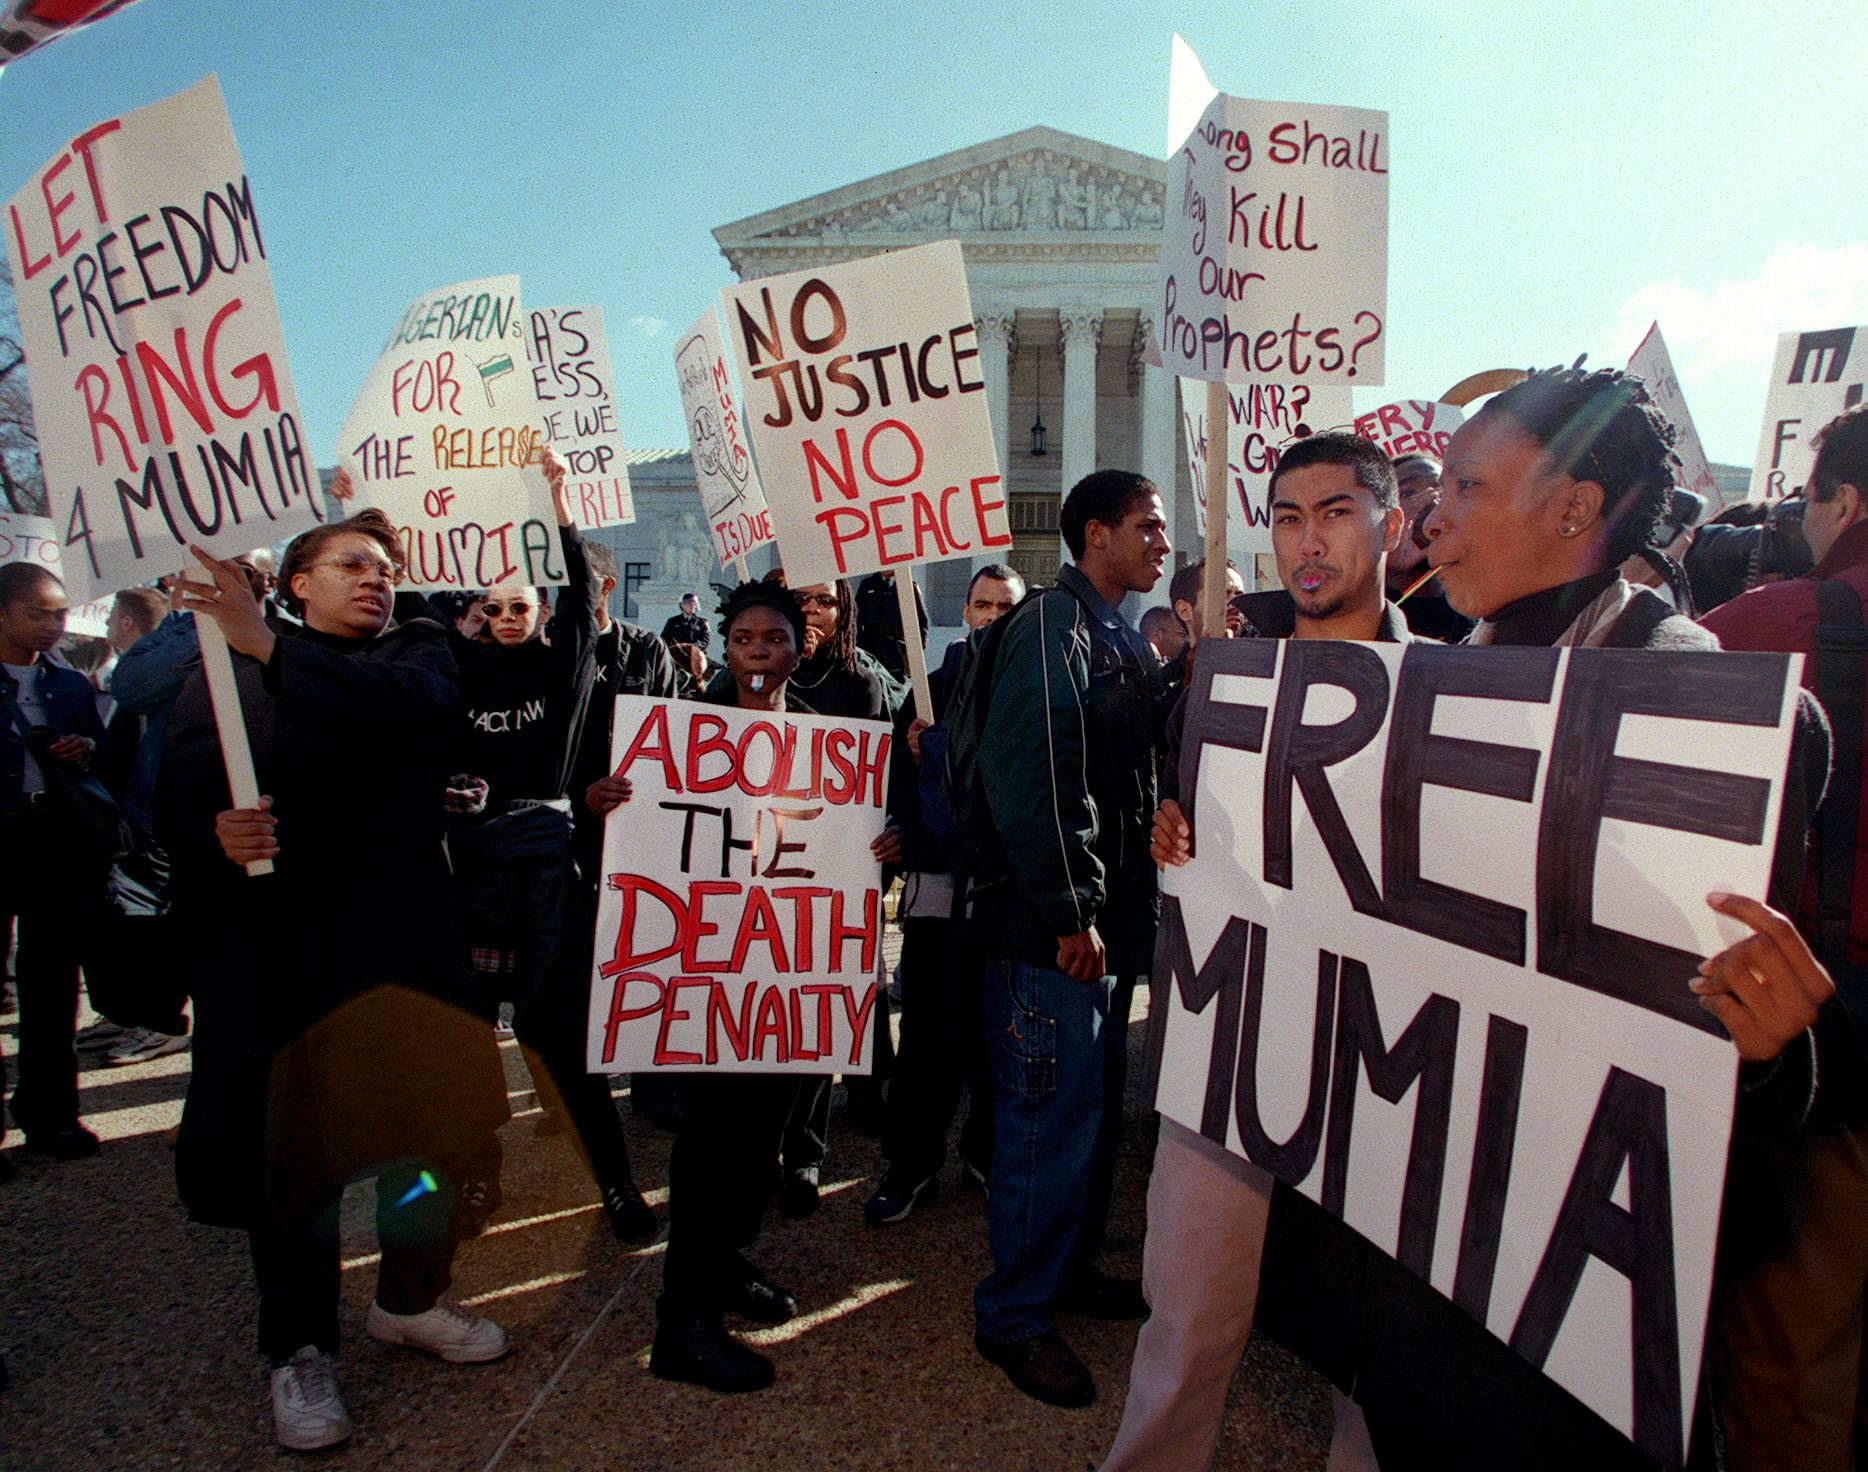 Protesters march with signs calling for the end of the death penalty during a demonstration 28 February, 2000 in front of the US Supreme Court in Washington, DC, as justices inside the Supreme Court hear arguments on the Effective Death Penalty Act of 1996, giving the right to appeal when there is new evidence of innocence. The protesters are seeking a new trial for former radio journalist and one time Black Panther Mumia Abu-Jamal who was sentenced to death for killing a Philadelphia police officer in 1981.    AFP PHOTO/Chris KLEPONIS (Photo credit should read CHRIS KLEPONIS/AFP via Getty Images)